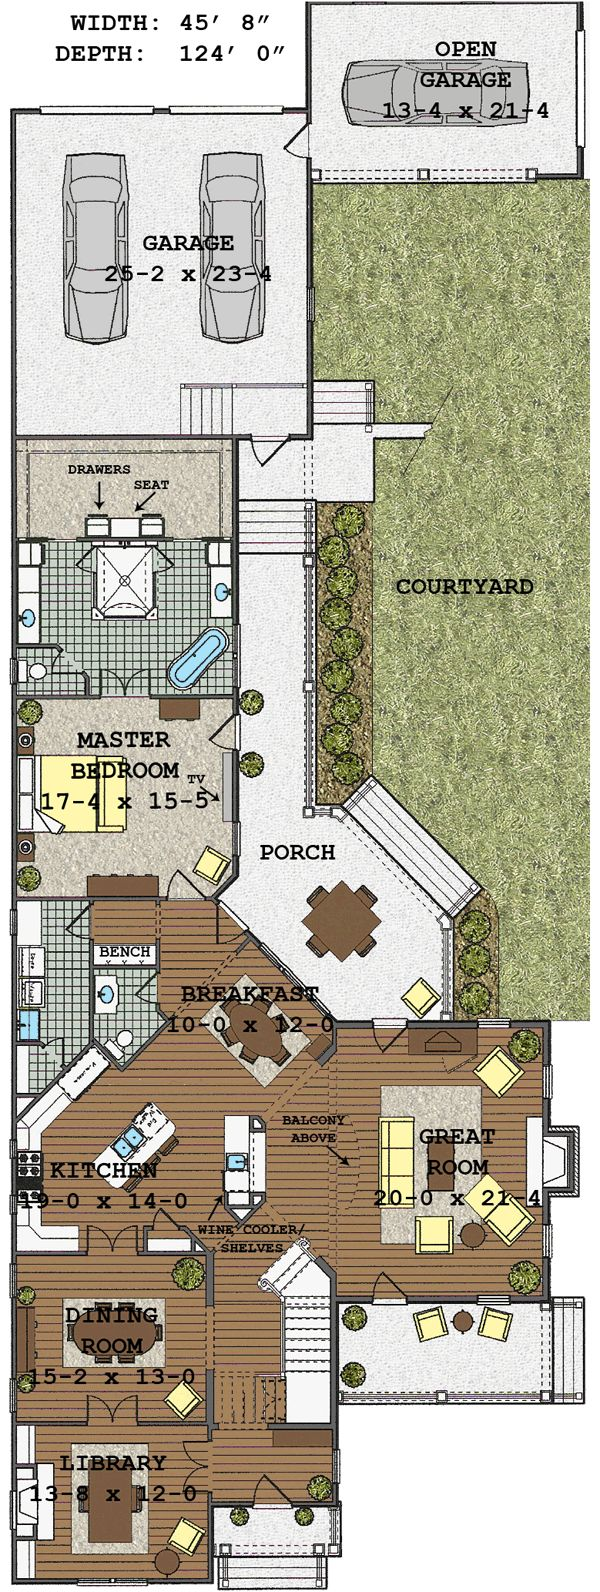 106 best lot house images on pinterest small houses house floor main floor 2309 upper floor 917 total heated square footage 3226 garage house sketchbuilding designsbuilding